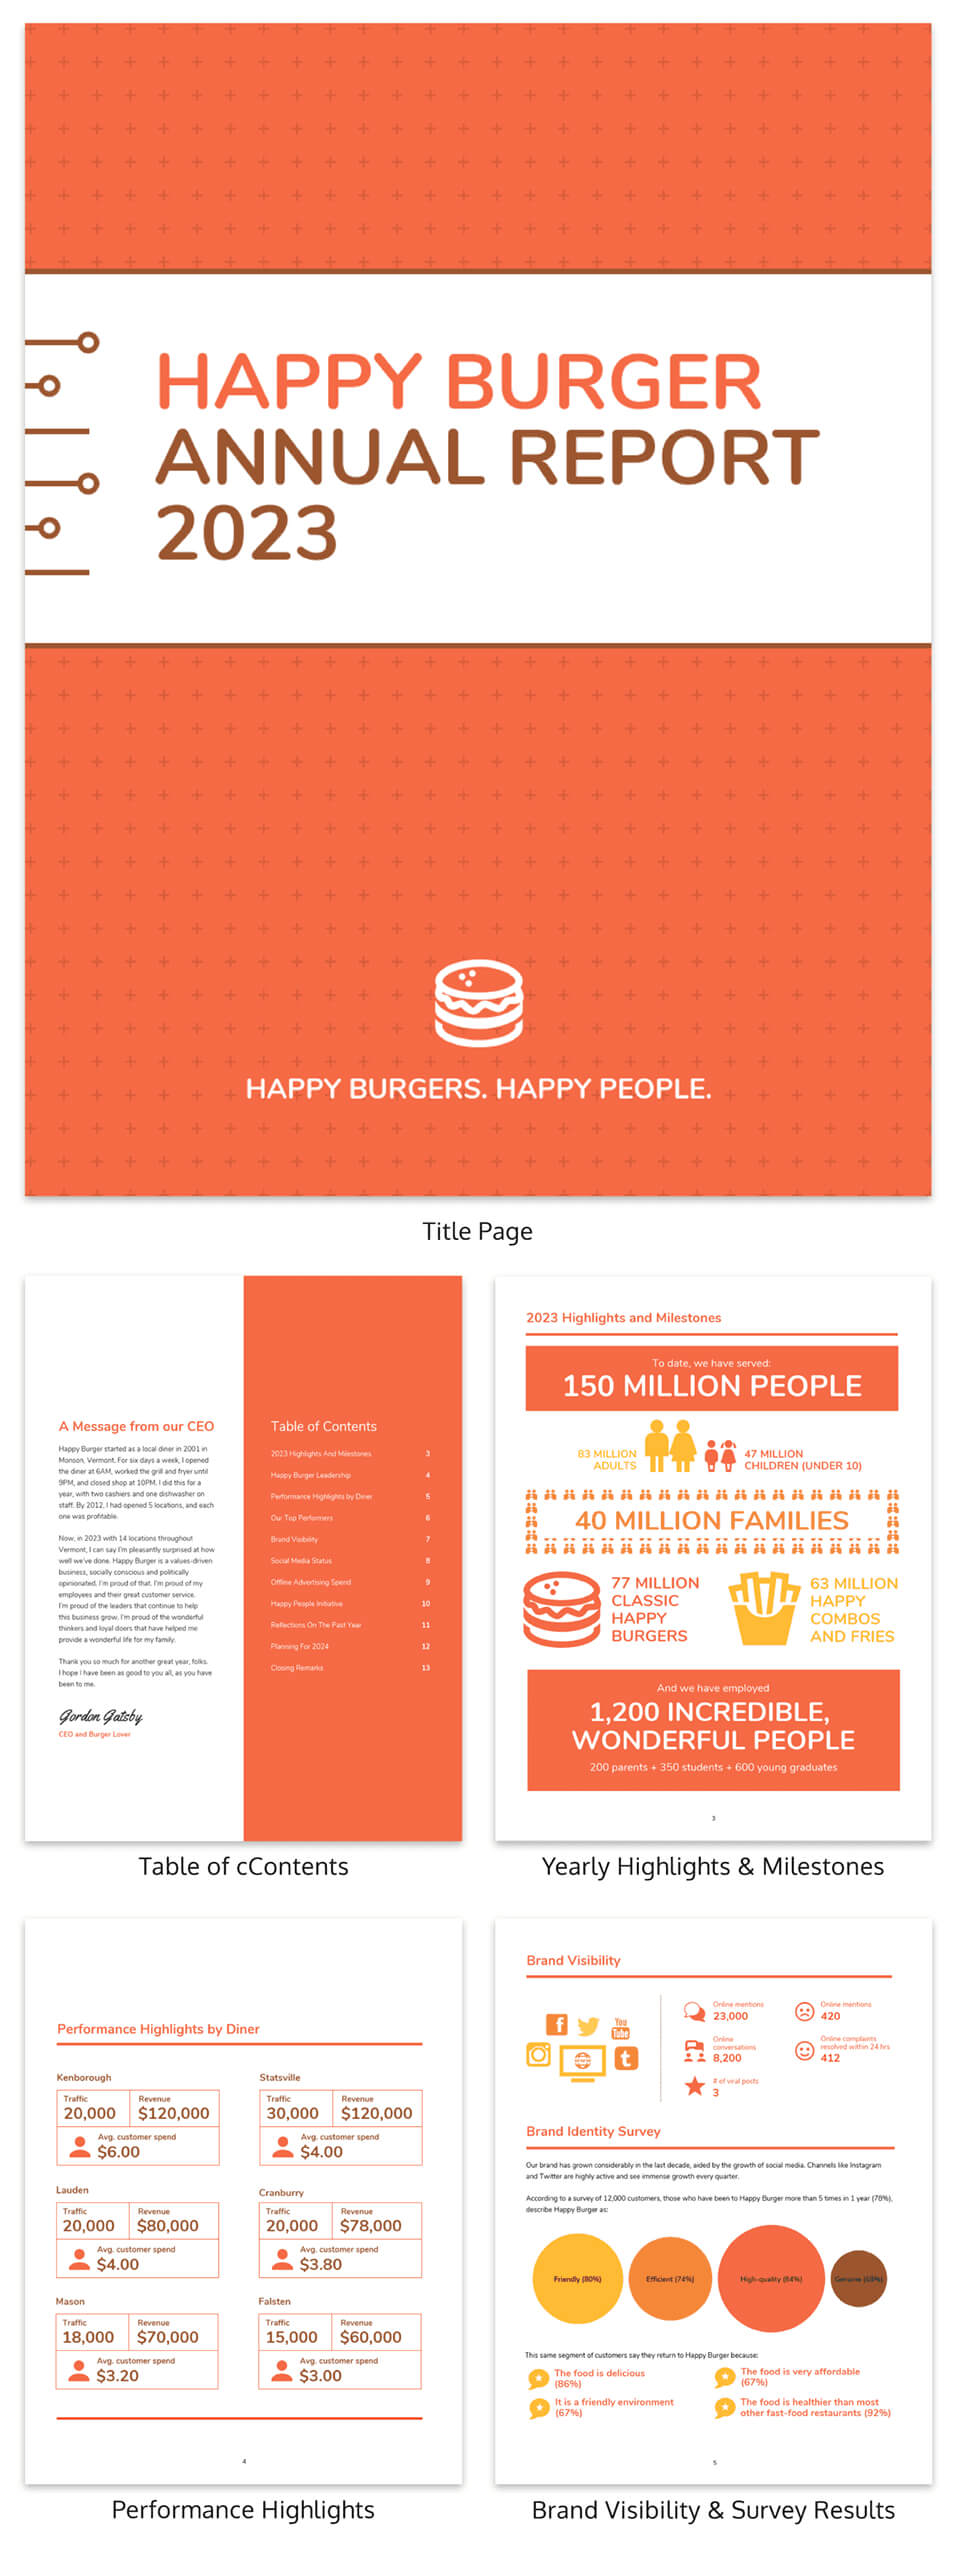 55+ Customizable Annual Report Design Templates, Examples & Tips inside Environmental Impact Report Template